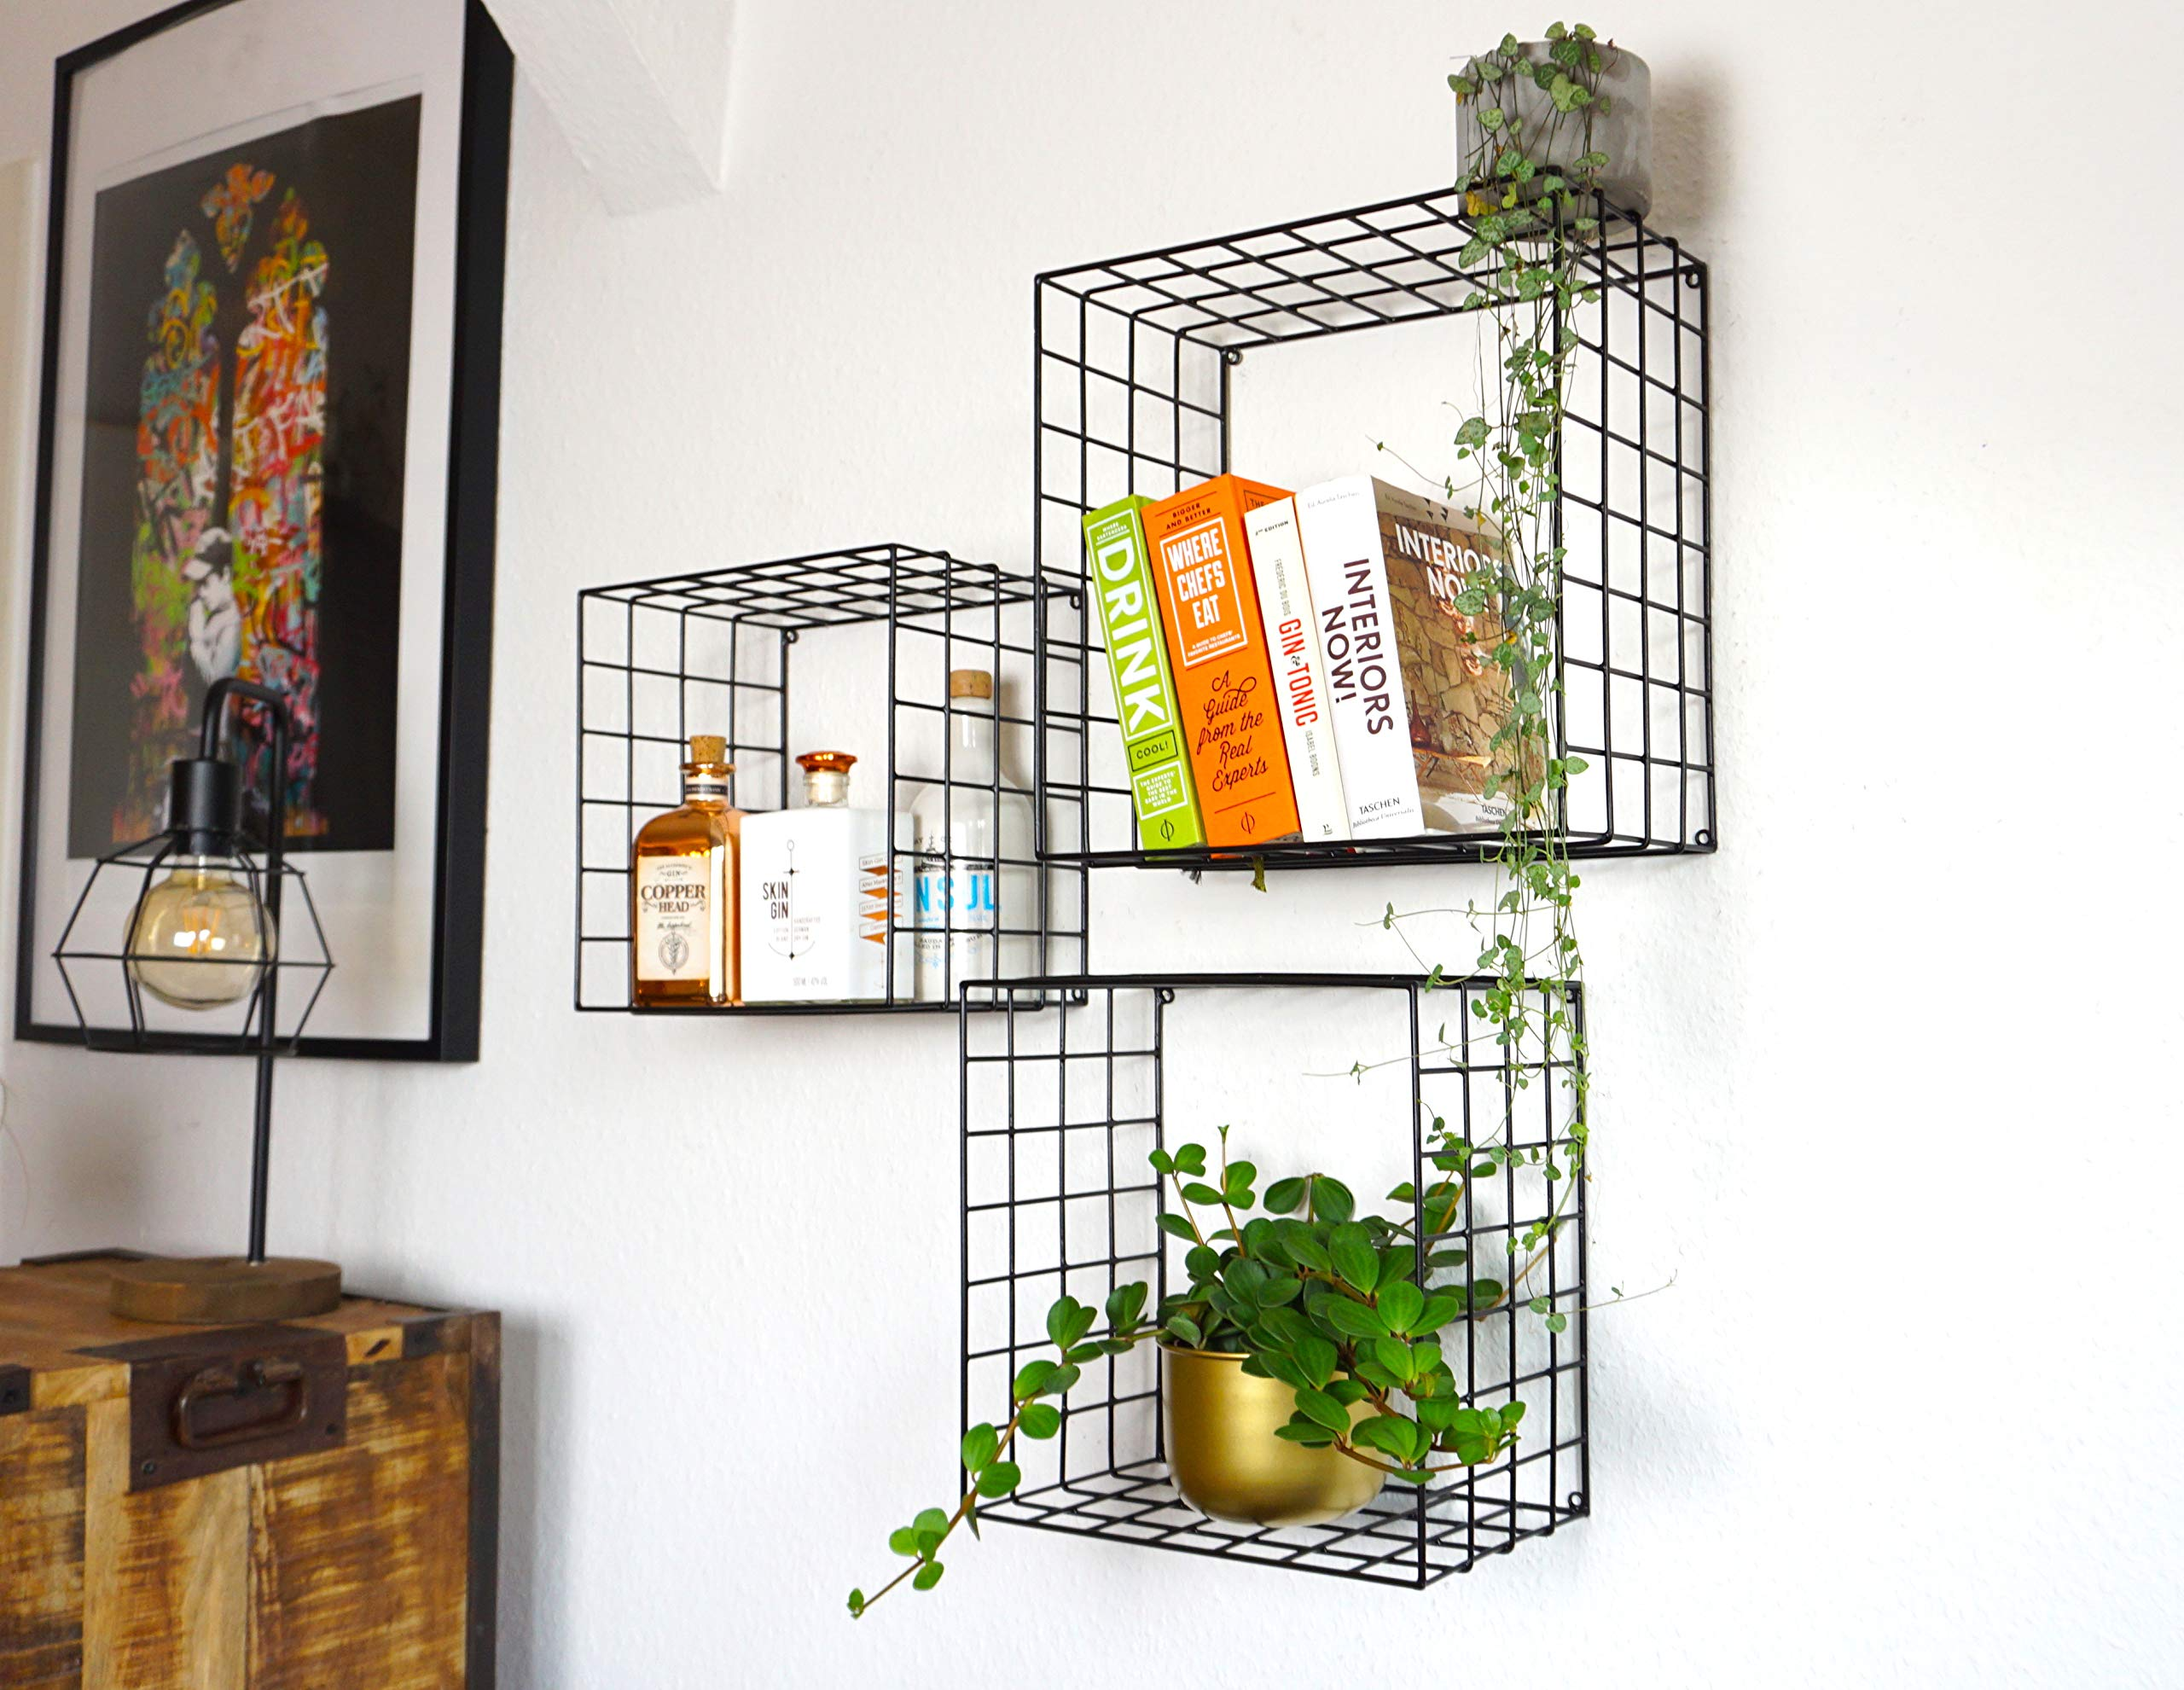 Kimisty Set of 3 Metal Floating Shelves | Decorative Wire Large Square Wall Mounted Shelf | Box Free Floating Mesh Shelves | Industrial Style Deep Black Metal Shelving | 14, 12, 11 Inch Long - FUNCTIONALITY AND STYLE: Kimisty ROOT floating shelf set is perfect way to display your plants, books, glassware and any other kind of shelf decor. Hang them linear or vertical or be playful and use them by hanging cross. No matter how you style them it will be a memorable decoration piece in your home and will collect many compliments. INDUSTRIAL TREND: Industrial interior trend is not leaving us soon. And we love how it adds modern touch to your space so easily and effortlessly. ROOT shelves are deep and large unlike other models out there. Dimensions are : Large: 14 x 14 X 7.5 inch Medium: 12.5 x 12.5 X 7.5 inch Small: 11 x 11 X 7.5 inch HIGH QUALITY MATERIALS AND CRAFTMANSHIP: Material quality means everything to us. We use heavy gauge iron with black powder coating. - wall-shelves, living-room-furniture, living-room - 81b iKCFvBL -